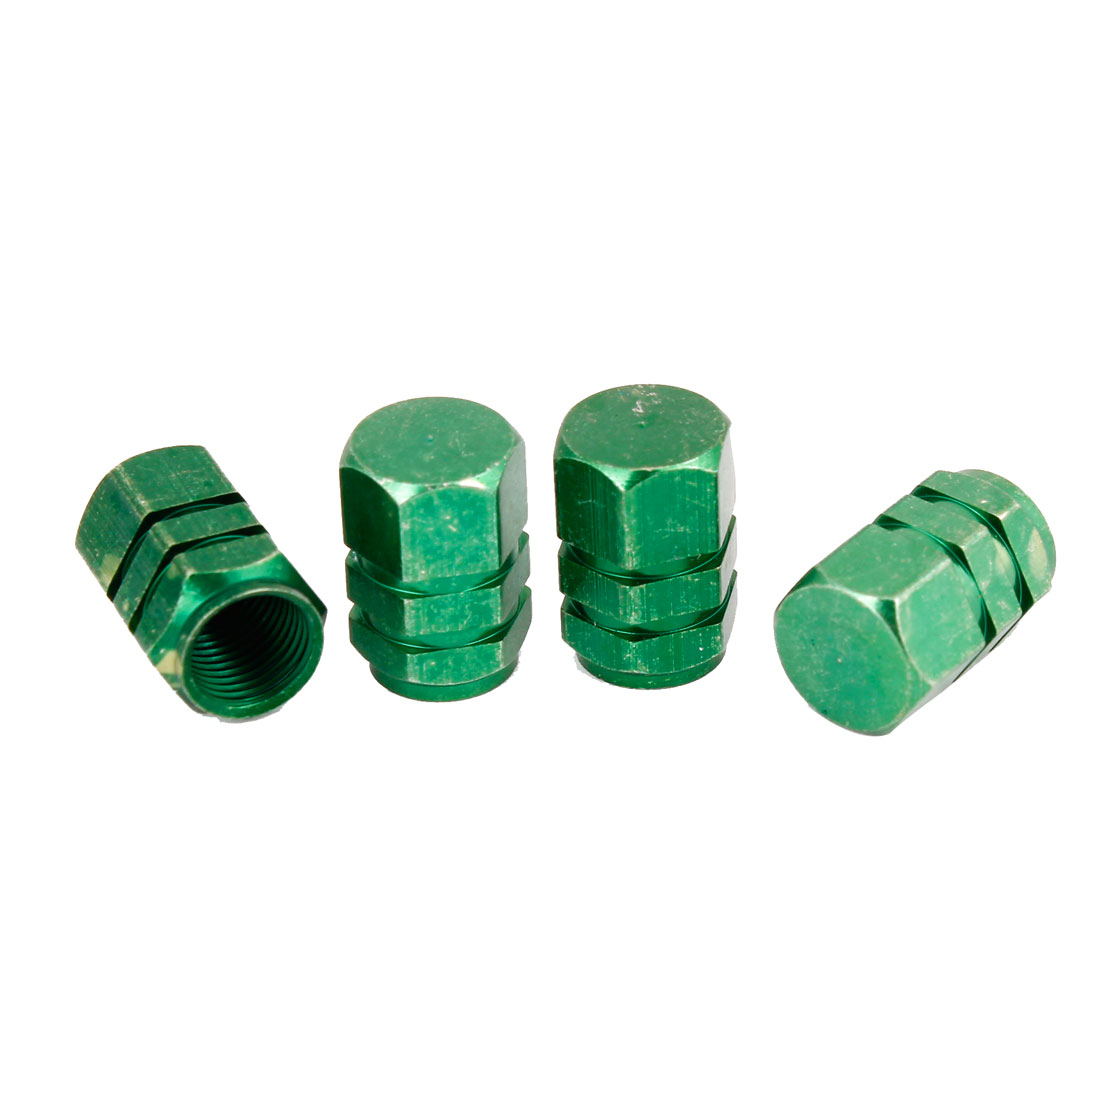 4 Pcs Green Alloy Hex Car Type Tire Wheel Stem Valve Cap 16mm x 11mm